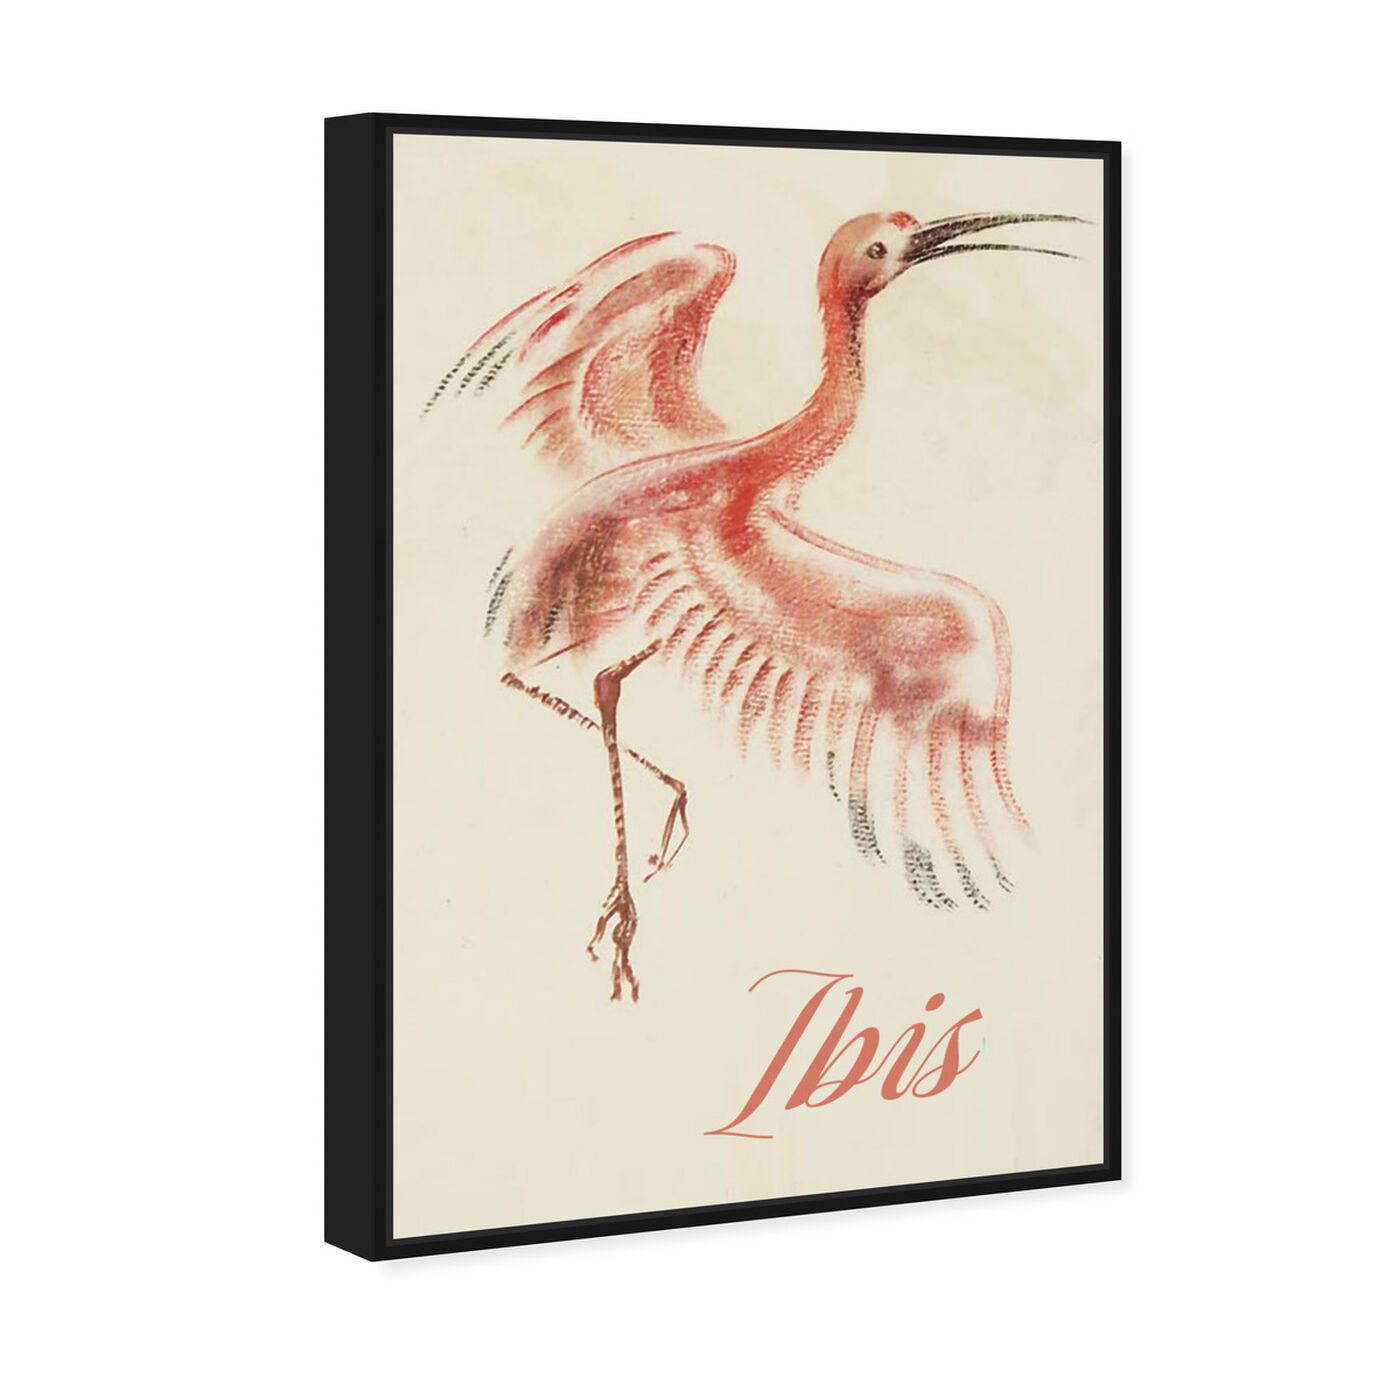 Angled view of Ibis featuring animals and birds art.